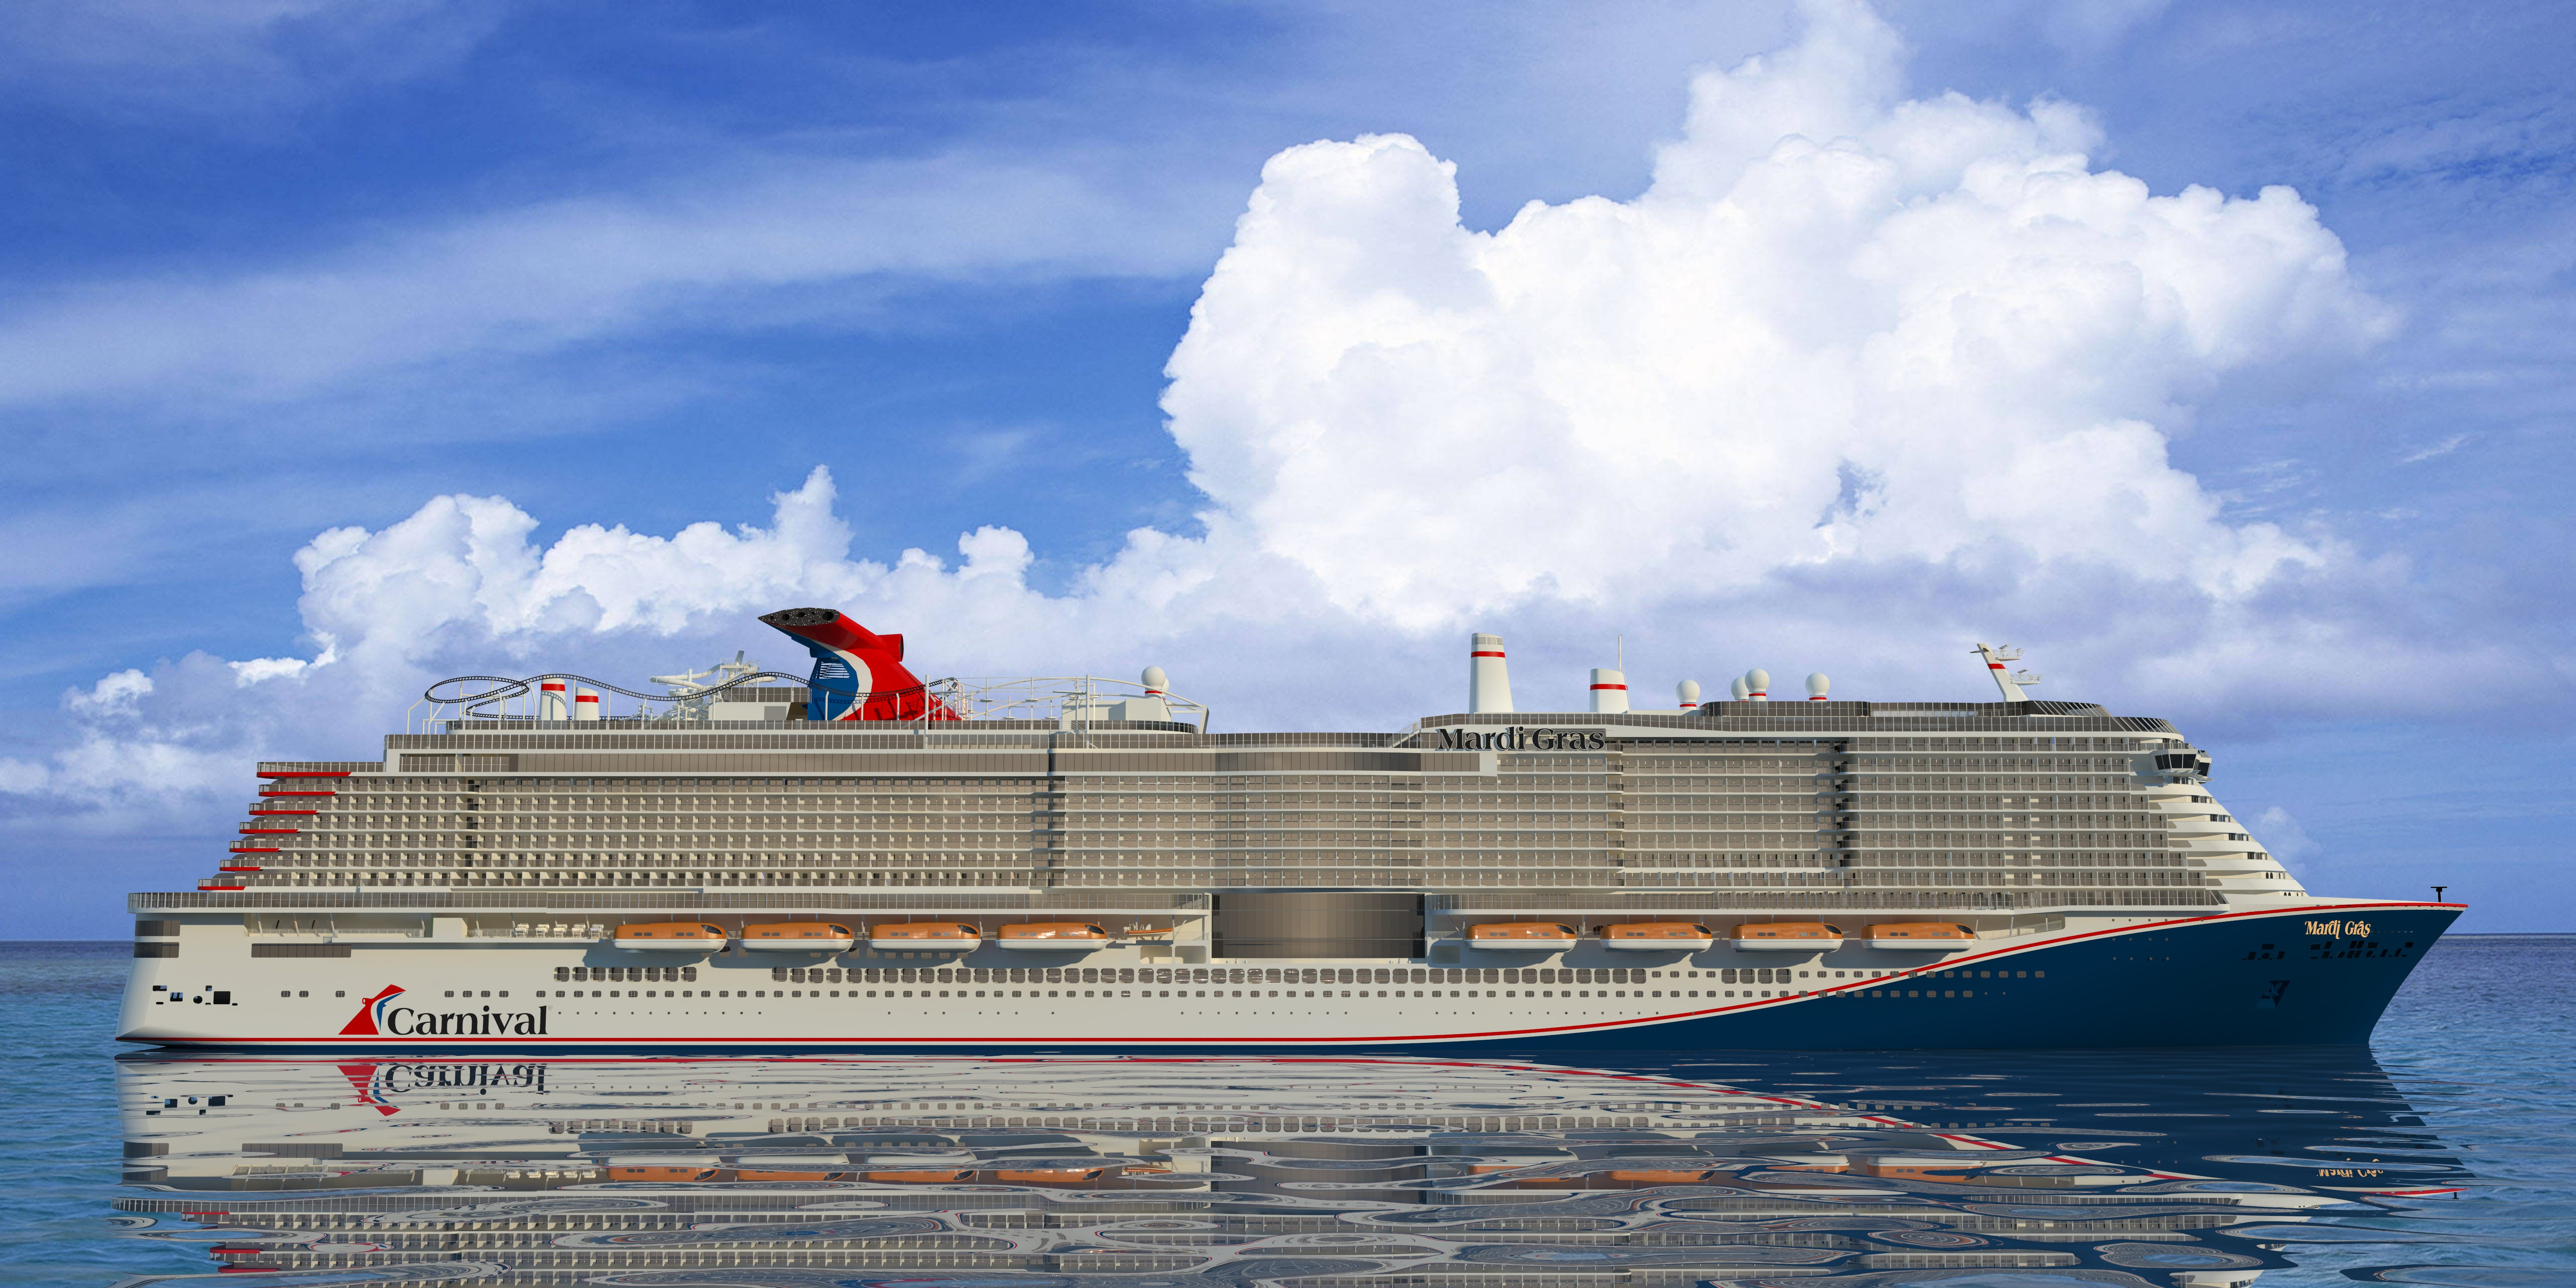 Construction Of Mardi Gras Delayed Canceling 4 Port Canaveral Sailings